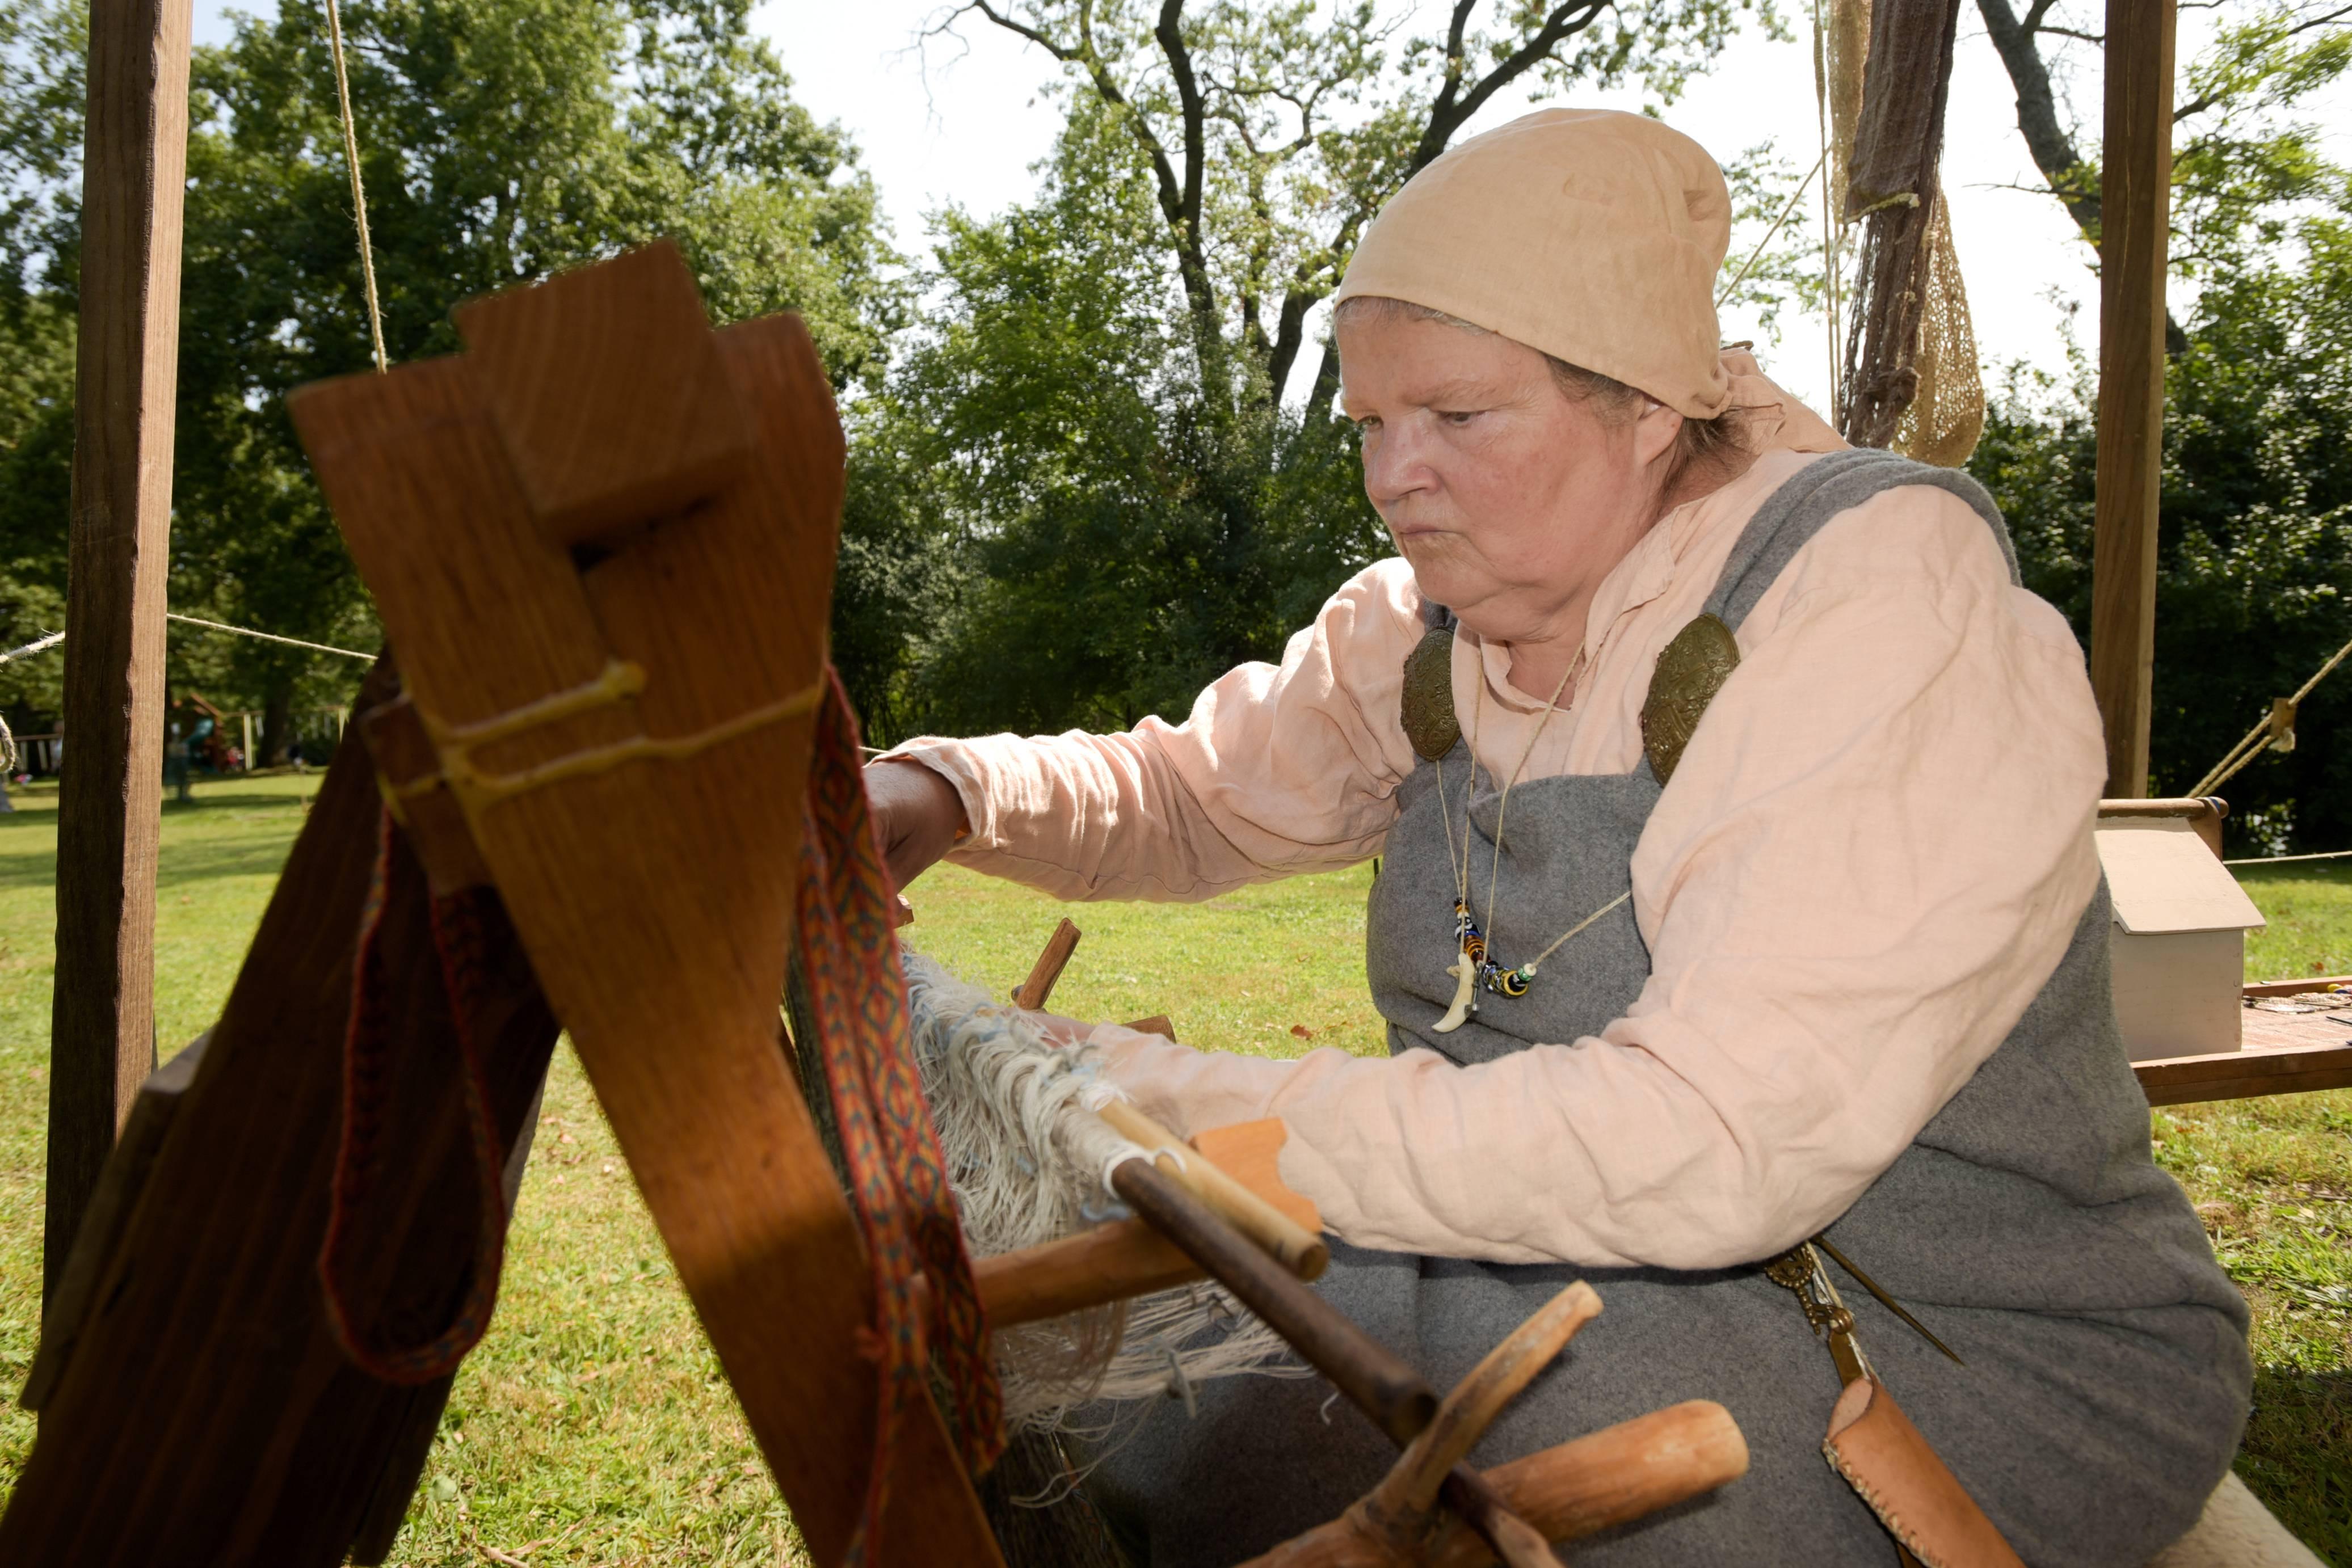 Julia Watkins of Urbana demonstrates early Anglo-Scandinavian weaving during the 38th Annual Scandinavian Day Festival Sunday in South Elgin. Visitors were treated to sunny weather to enjoy Scandinavian entertainment, food and activities. The group Kyle and Dave performed an eclectic blend of traditional and modern Norwegian folk music, to the joy of the audience. Younger visitors could ride horses and ponies in the South Elgin park along the Fox River or create their own personalized Viking shields. The festival celebrated five countries -- Denmark, Norway, Sweden, Finland and Iceland.